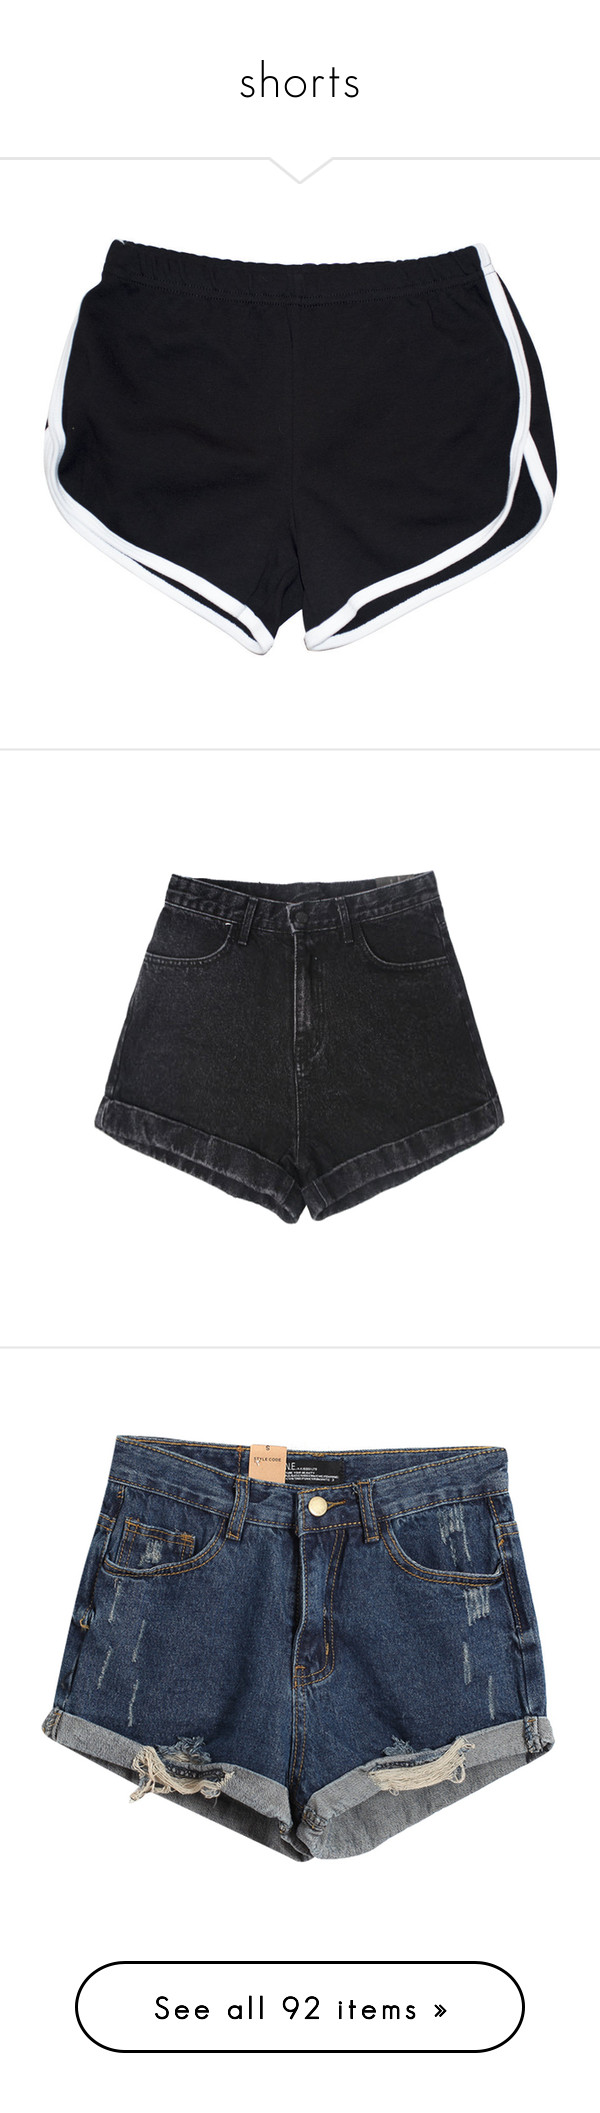 """""""shorts"""" by ouchm4rvel ❤ liked on Polyvore featuring shorts, bottoms, pants, short, white shorts, white short shorts, short shorts, black, denim short shorts and jean shorts"""